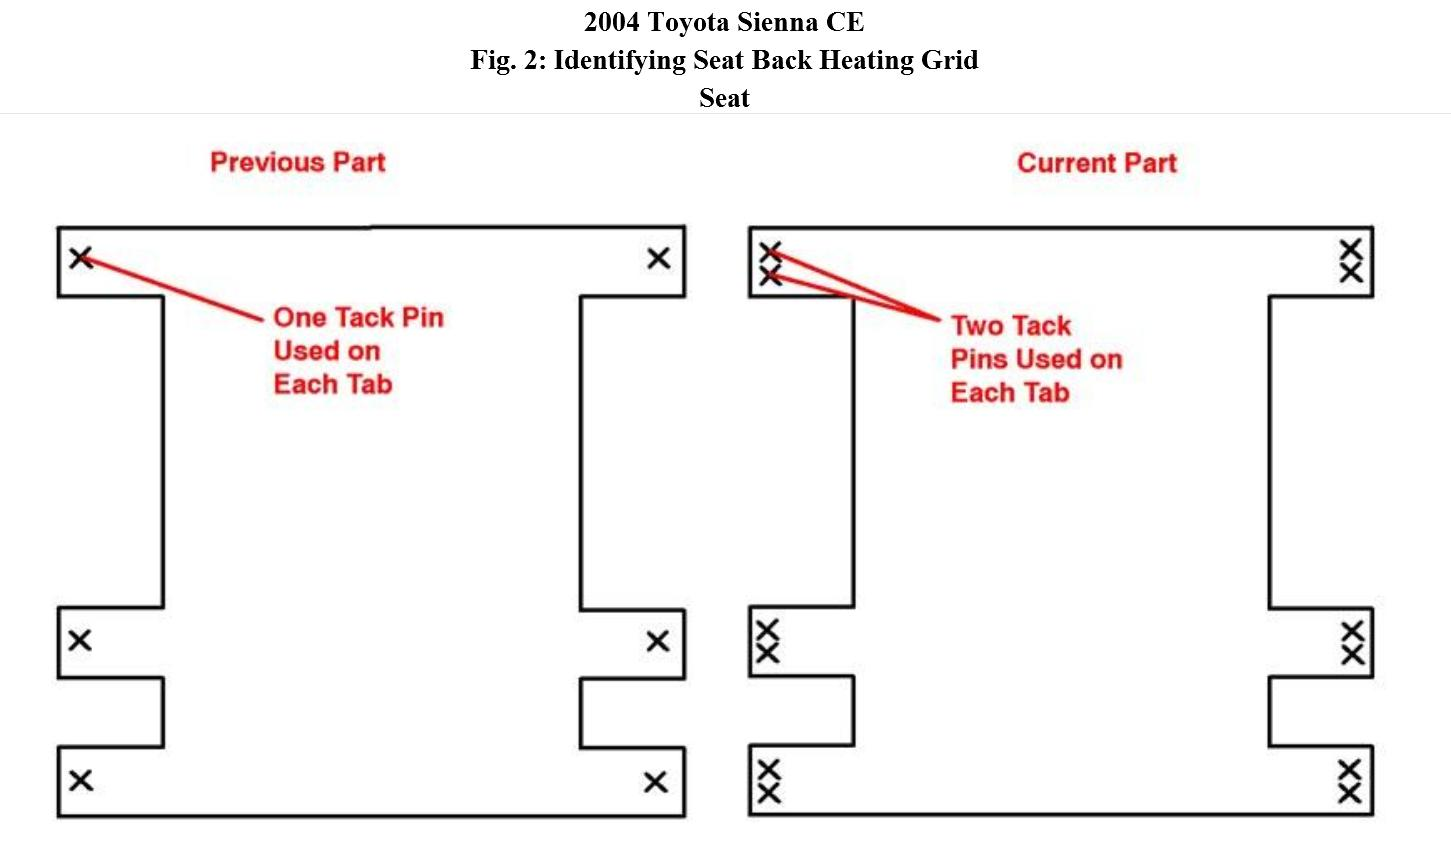 Heated Seats Inop Front Cant Find Tsb Ac005 04r Dated 24 Sept Wiring Diagram For 2004 Toyota Sienna Thumb